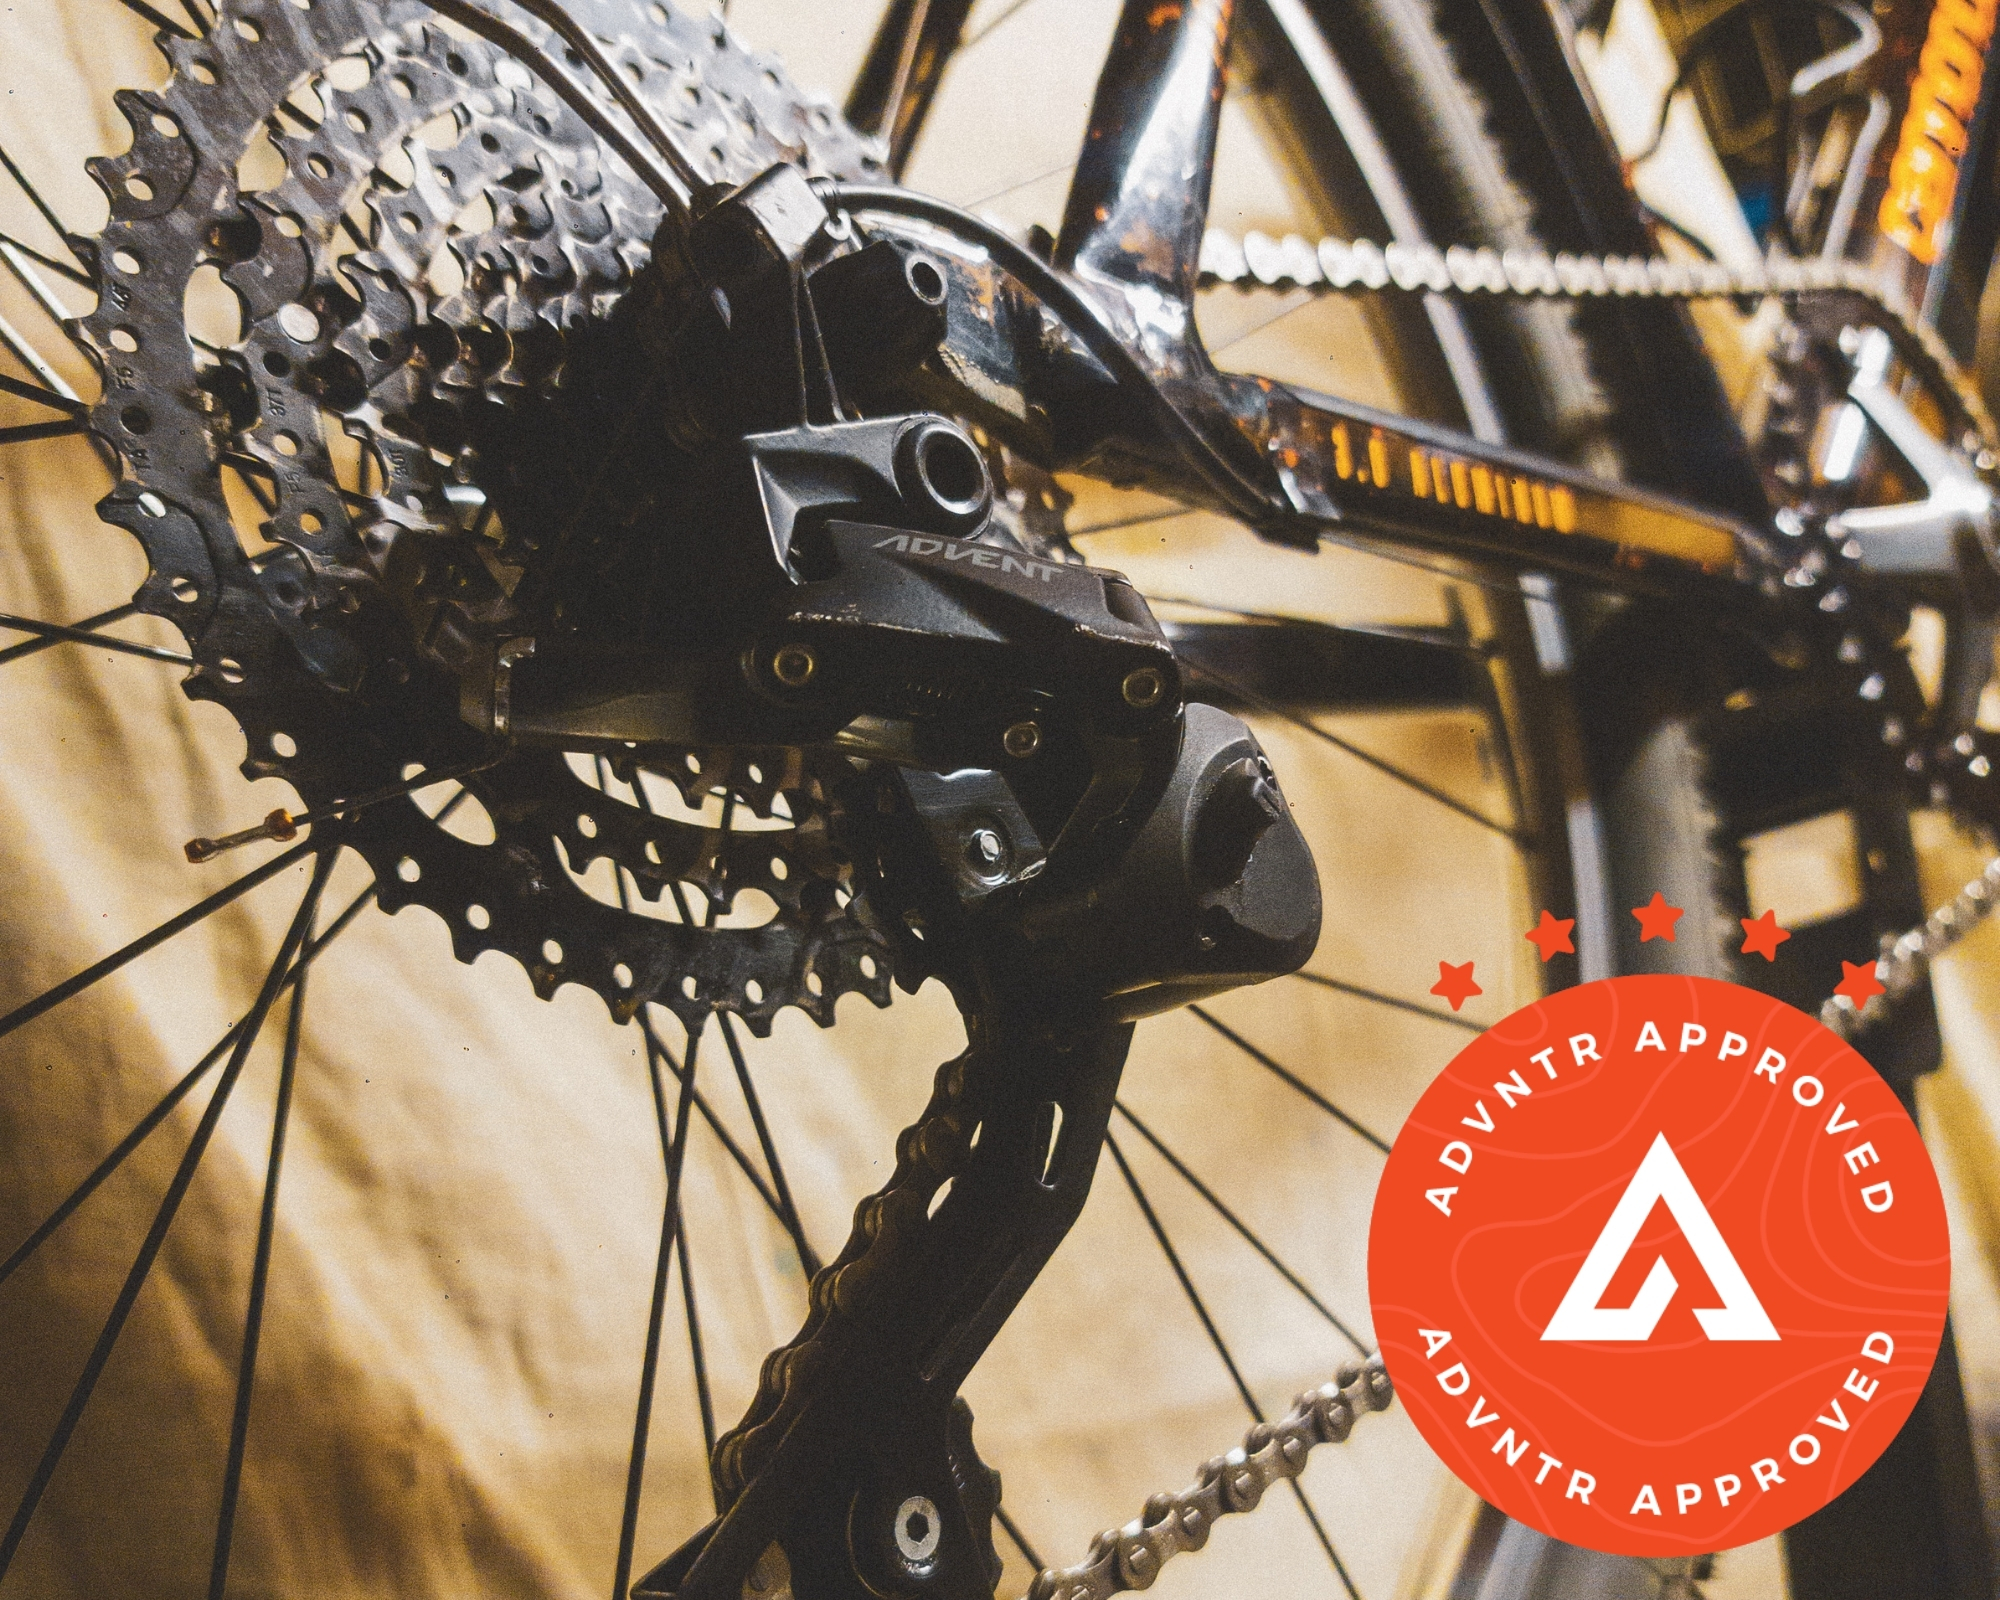 ADVNTR Approved Gear of the year